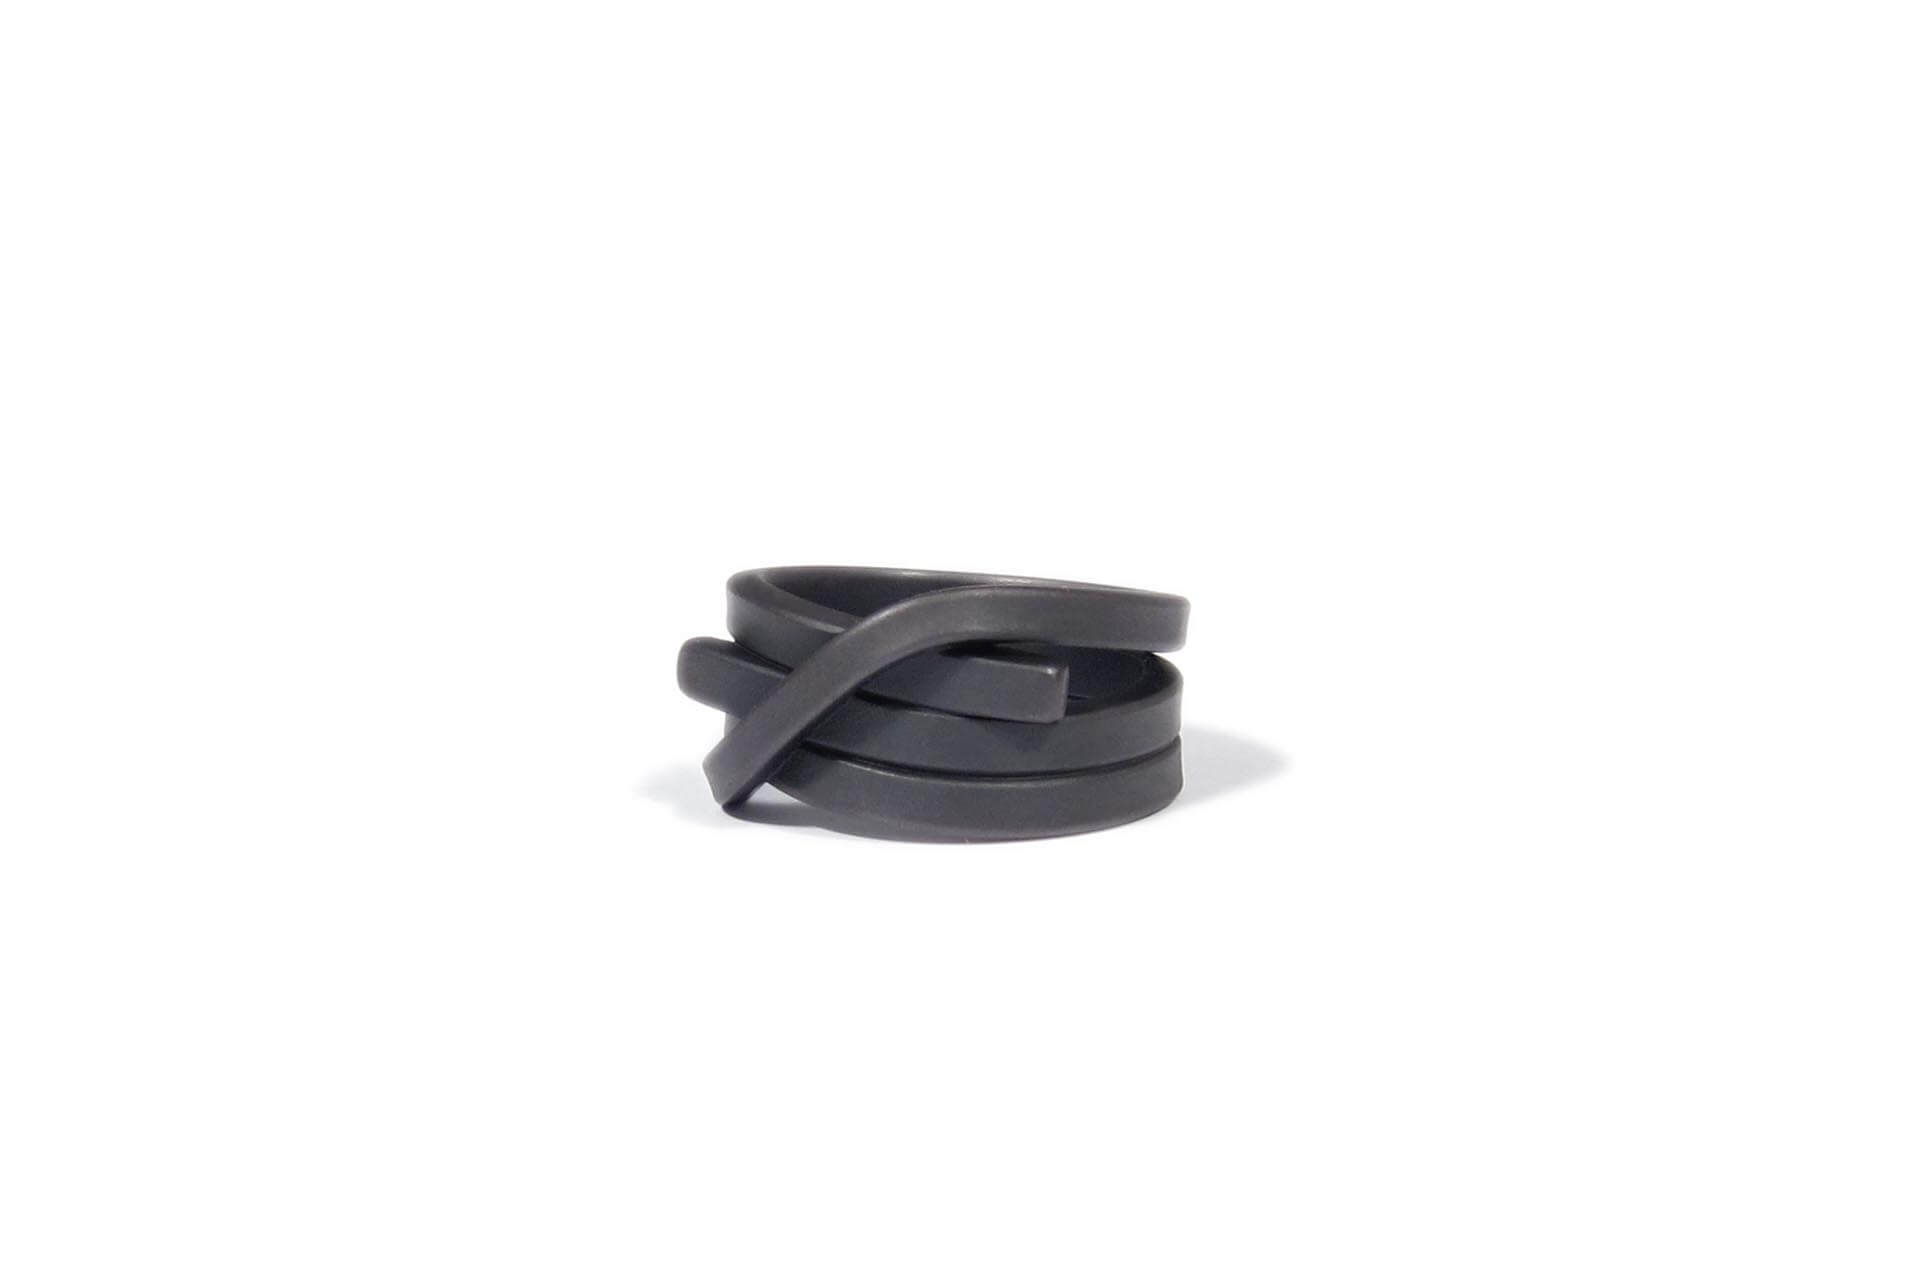 Oliver Schmidt black stainless steel knot ring